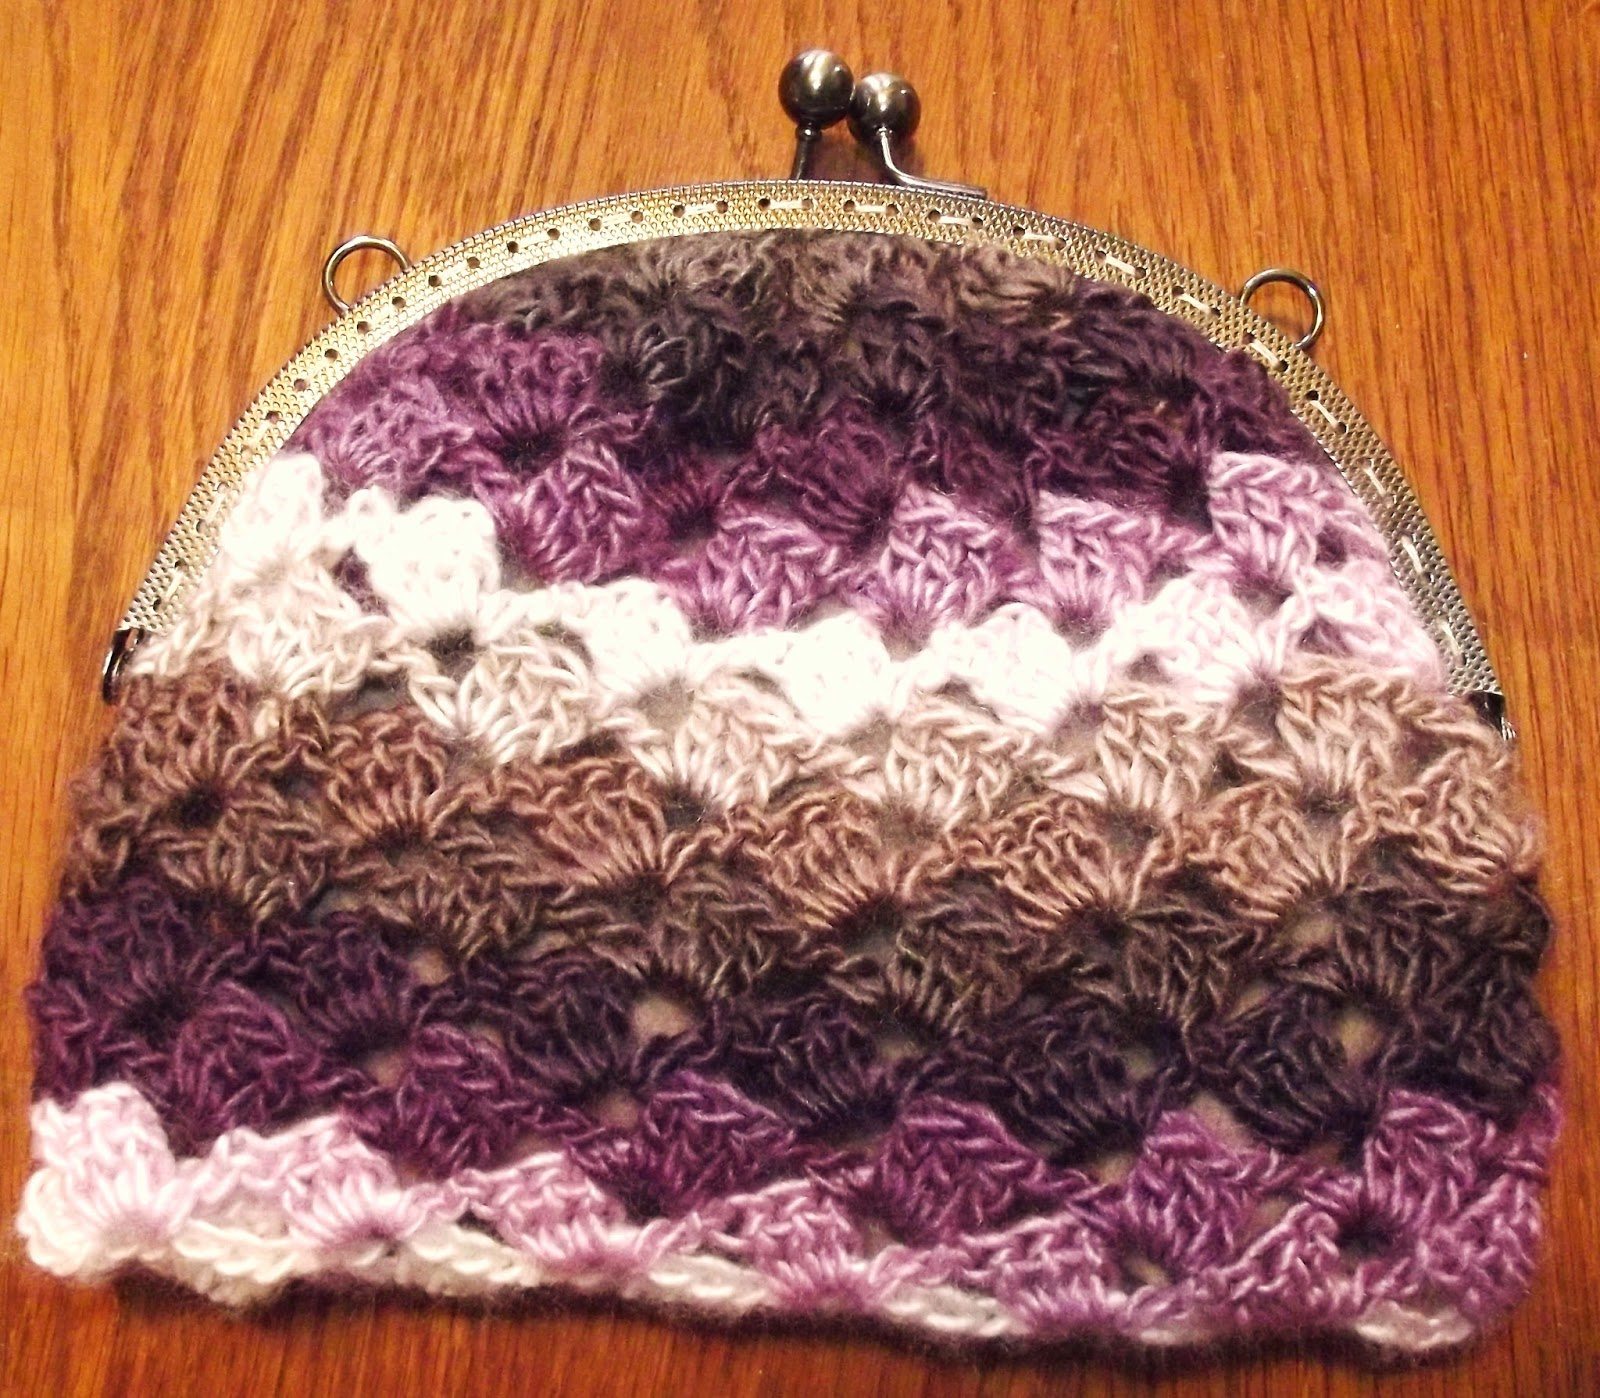 Crochet Fancy Bags : fancy crochet bag tutorial you will need a crocheted